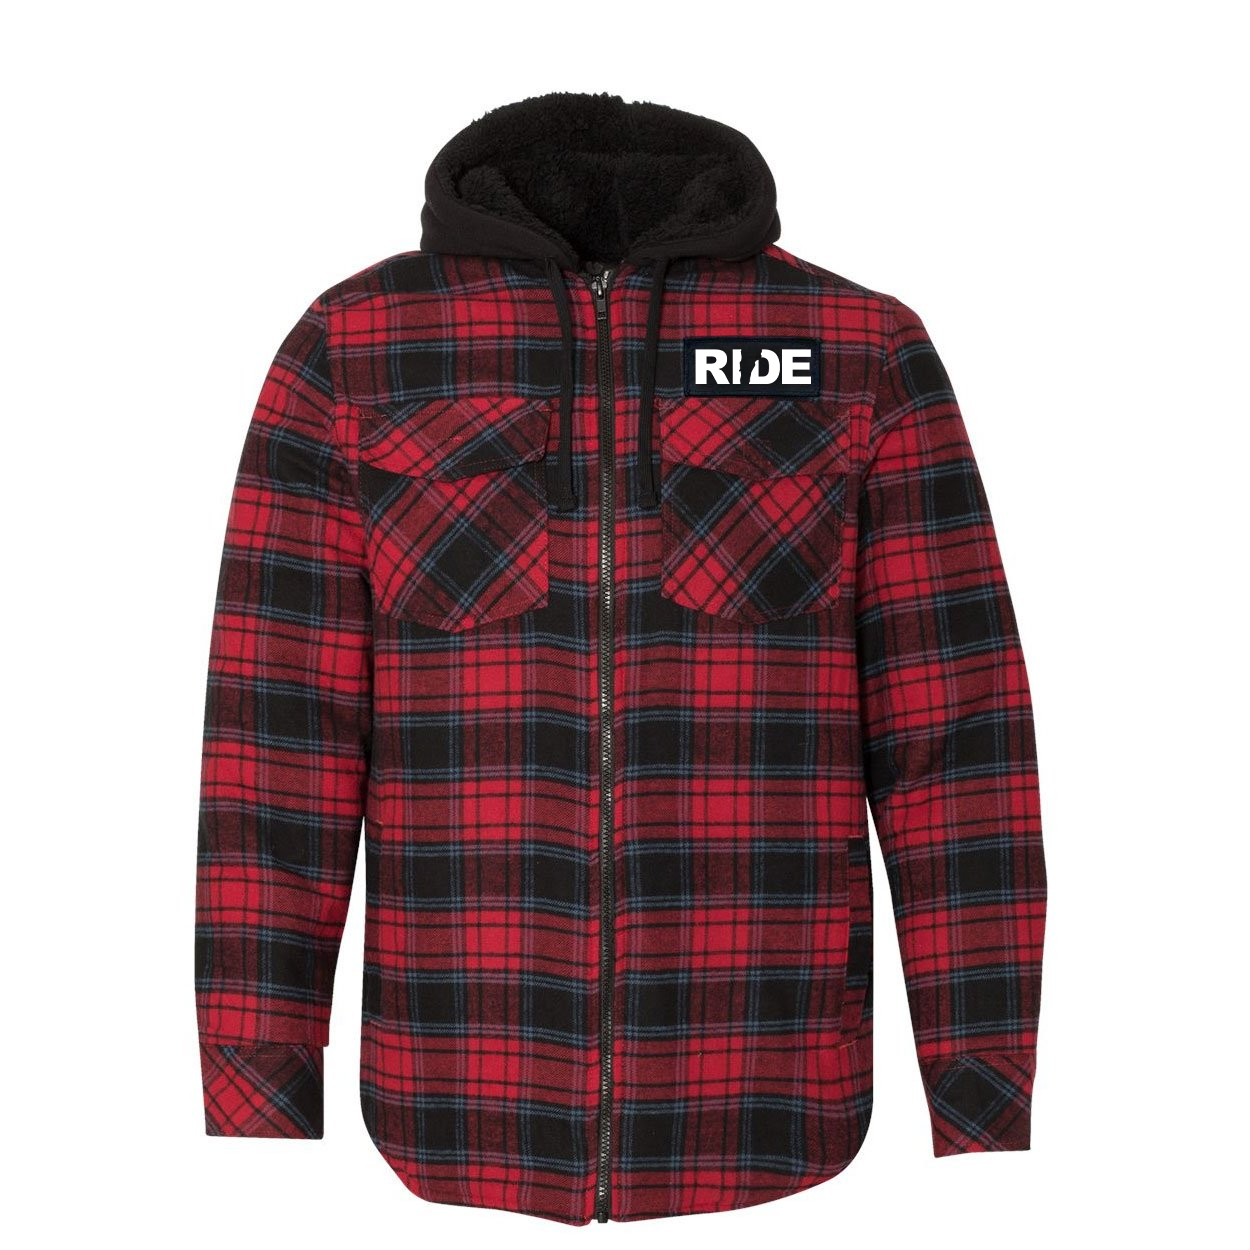 Ride Vermont Classic Unisex Full Zip Woven Patch Hooded Flannel Jacket Red/Black Buffalo (White Logo)